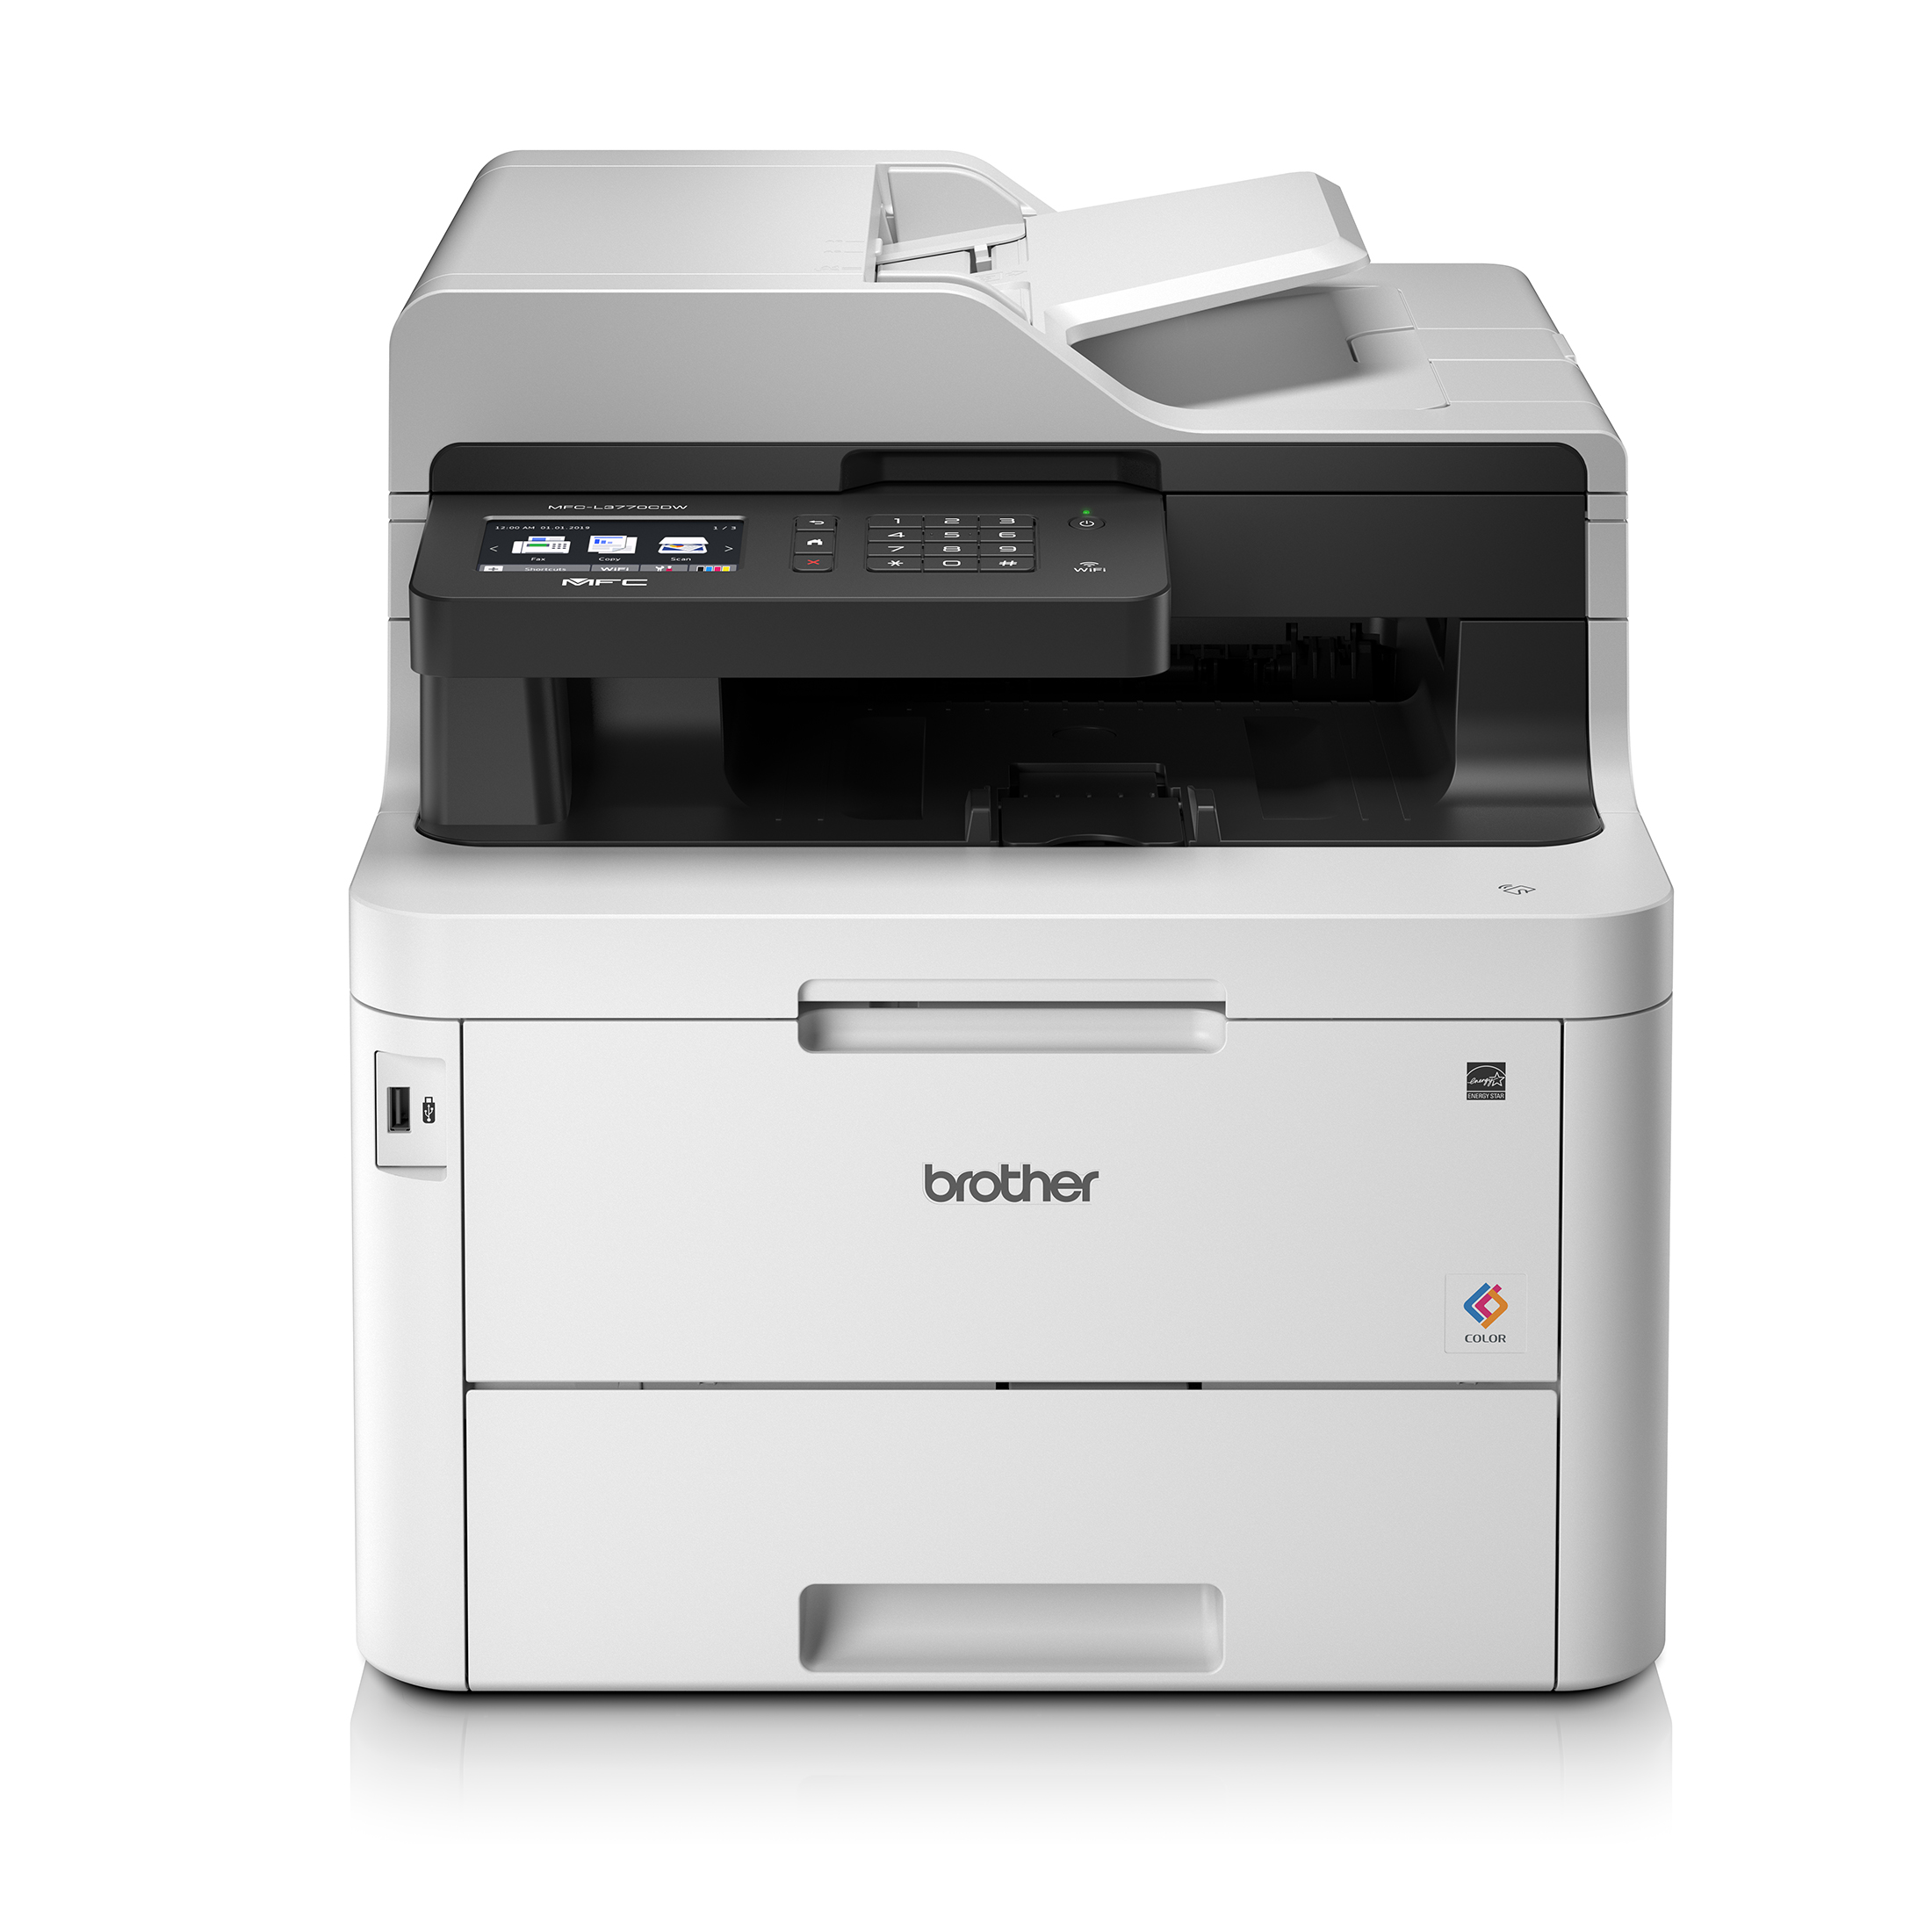 Multi function printers Brother MFC-L3770CDW Colour Laser Printer Wireless 4-in-1 with integrated NFC Ref MFC-L3770CDW